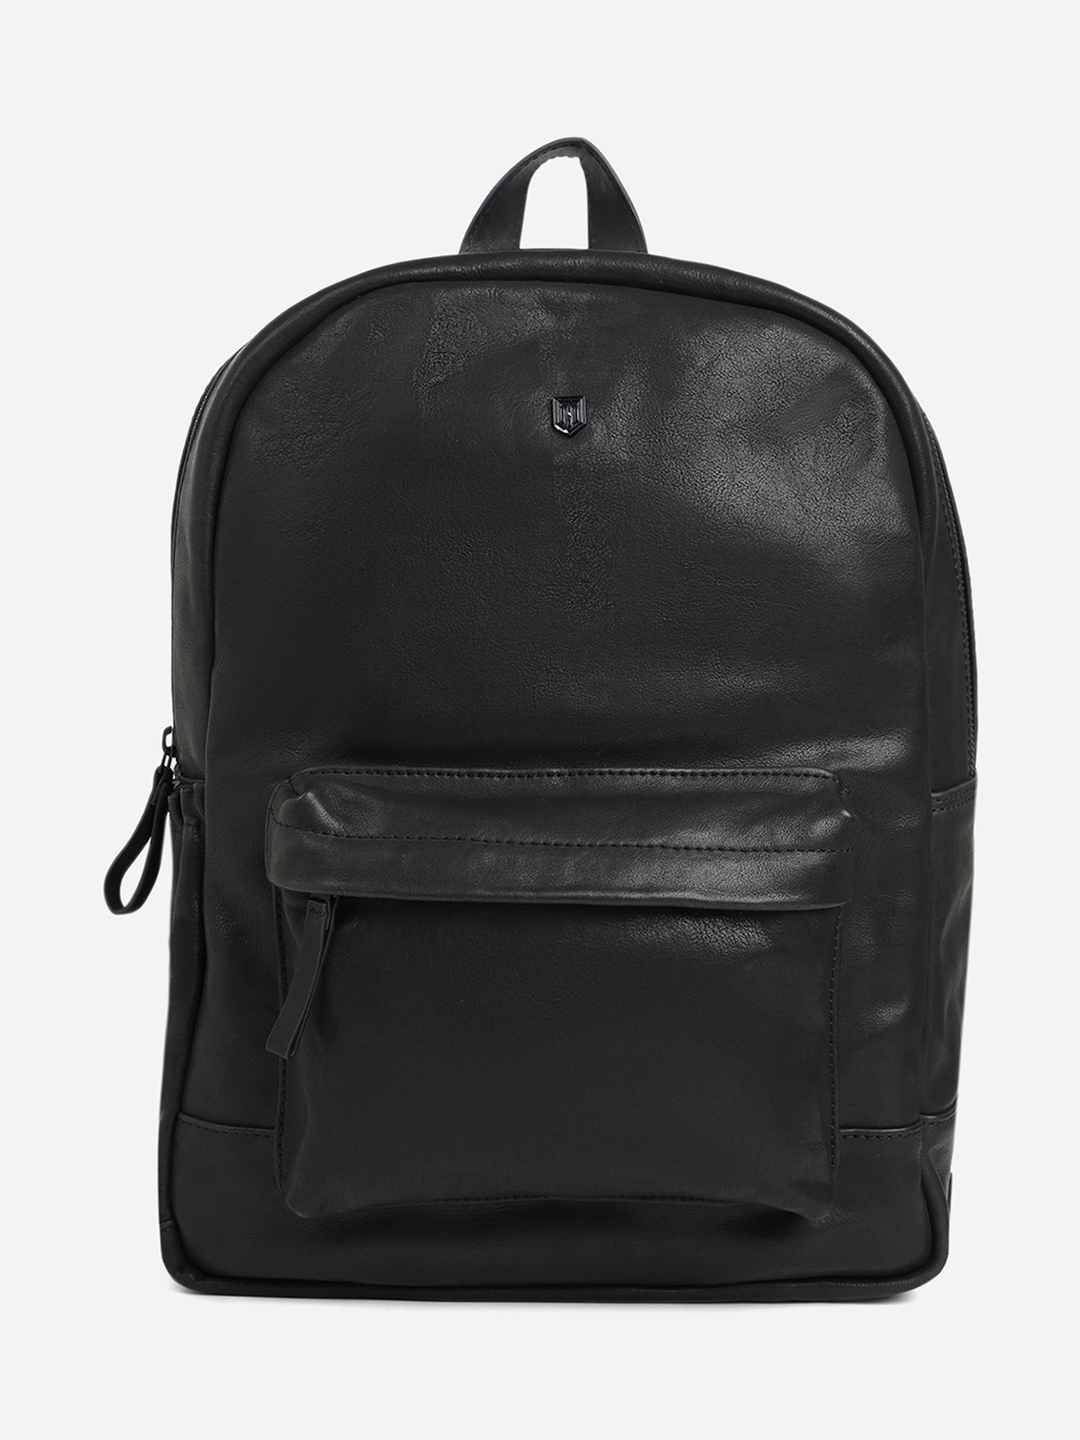 TOM LANG LONDON   TOM LANG LONDON LEATHER BACKPACK WITH FRONT AND SIDE POCKET